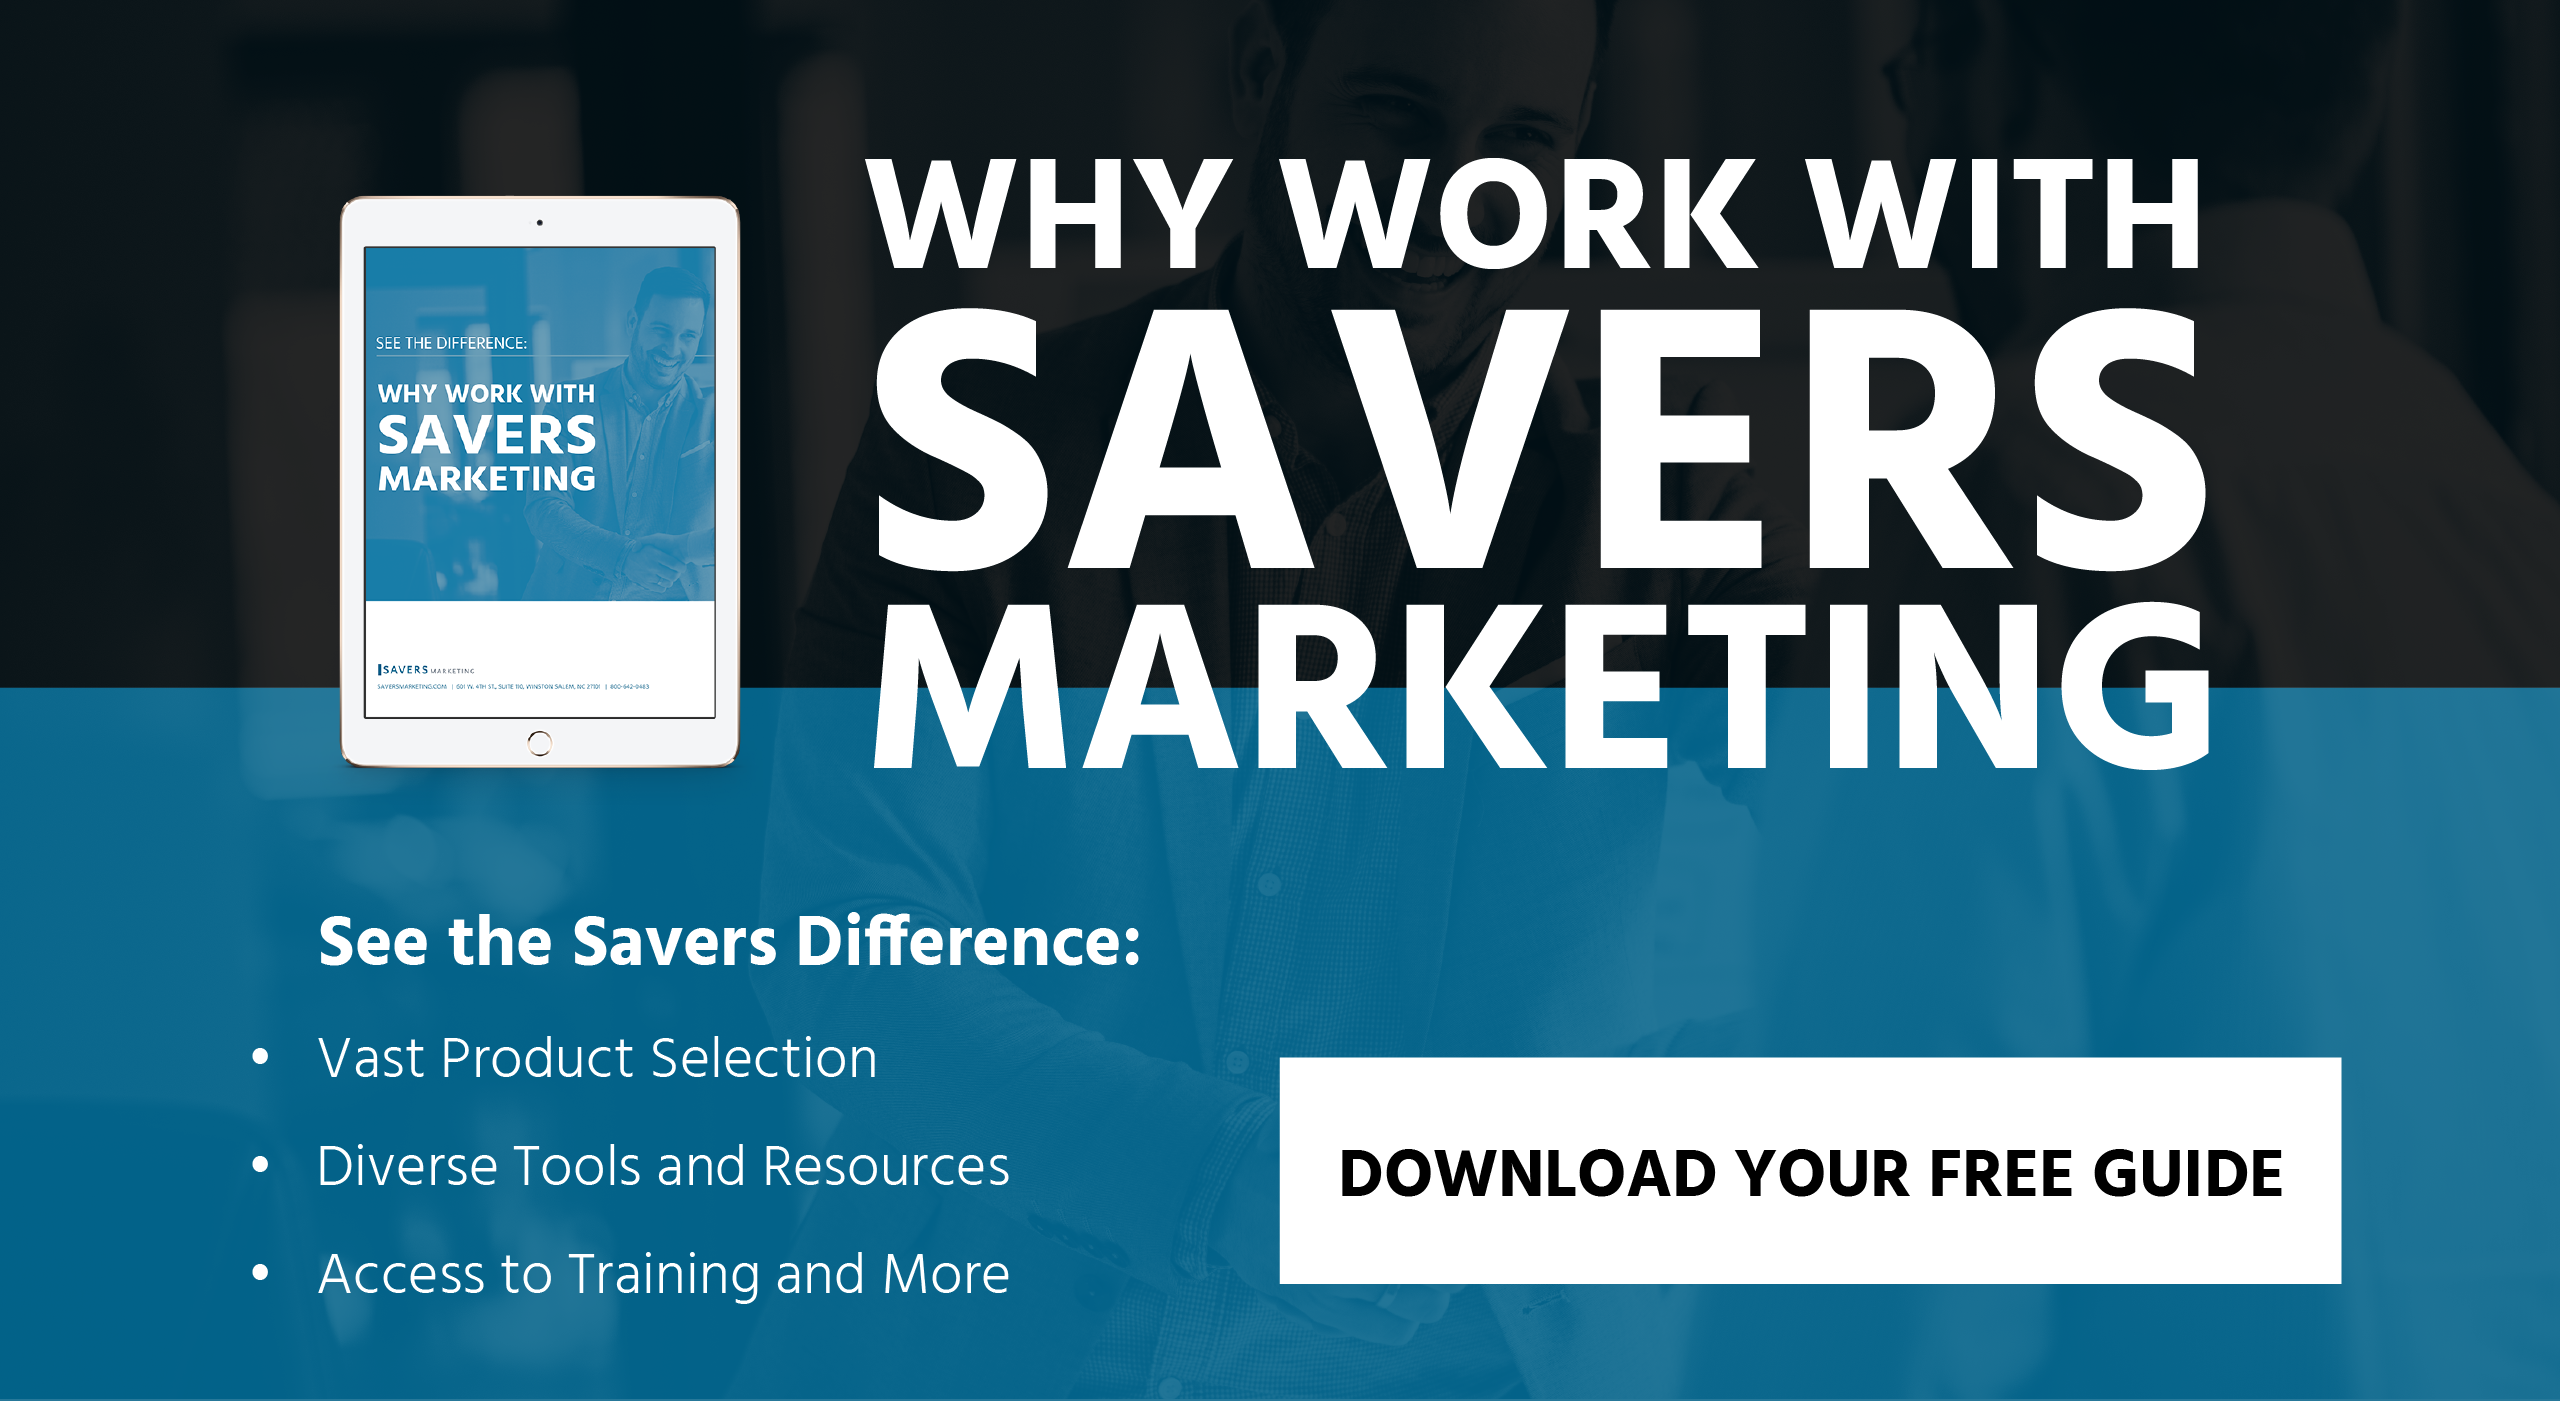 Why Work With Savers Marketing